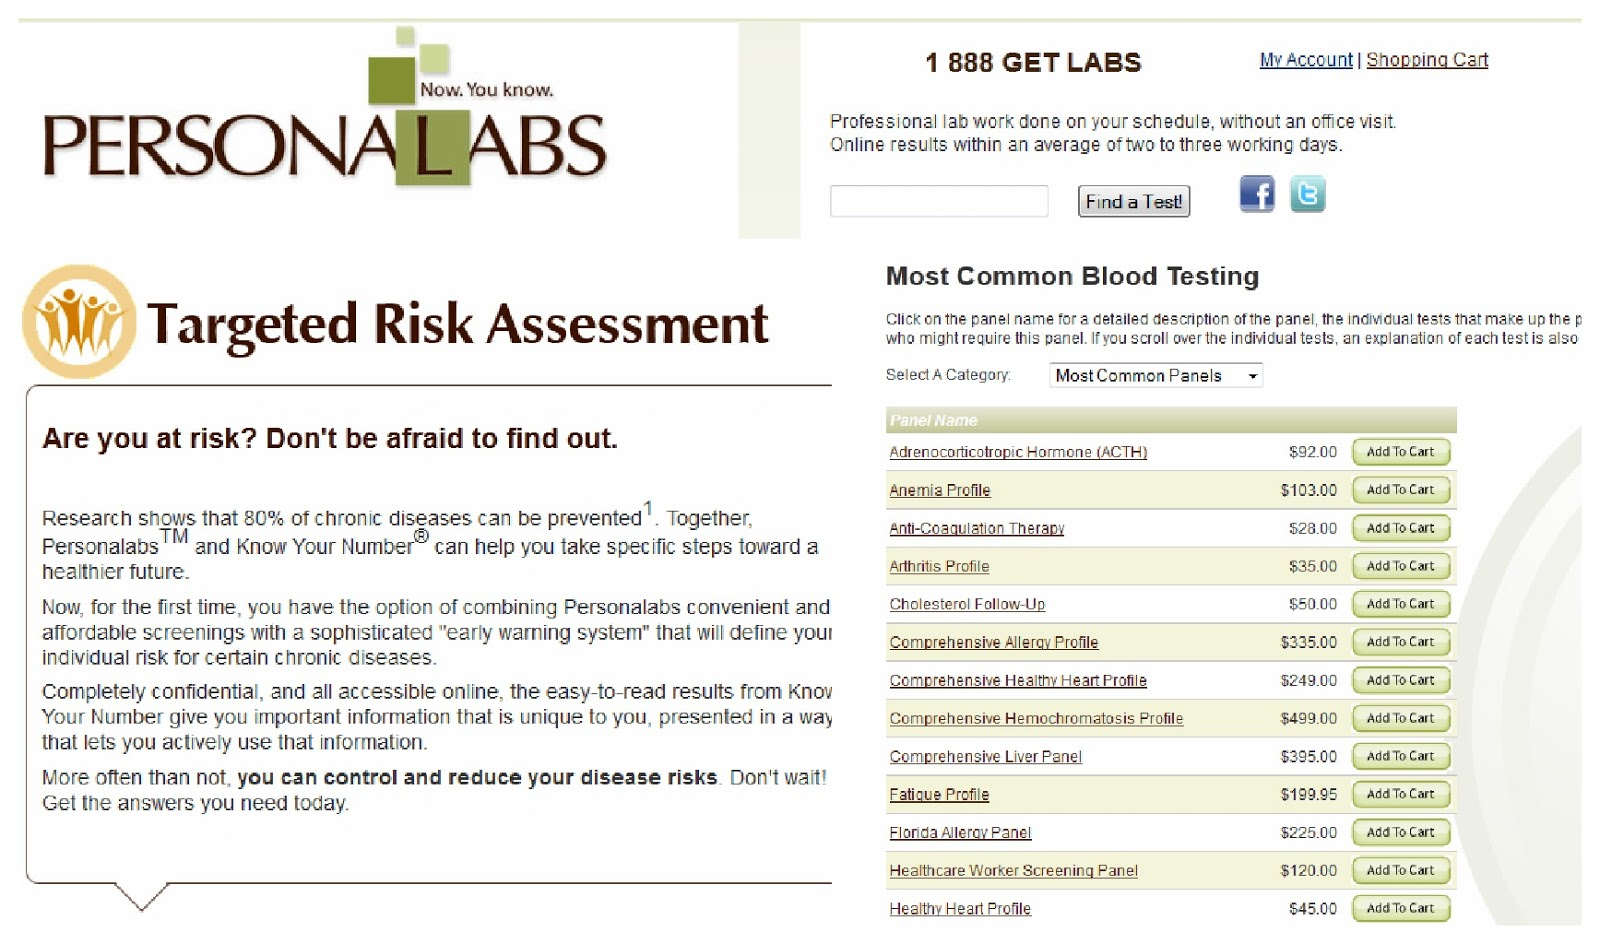 PersonaLabs Online Blood Testing: Targeted Risk Assessment